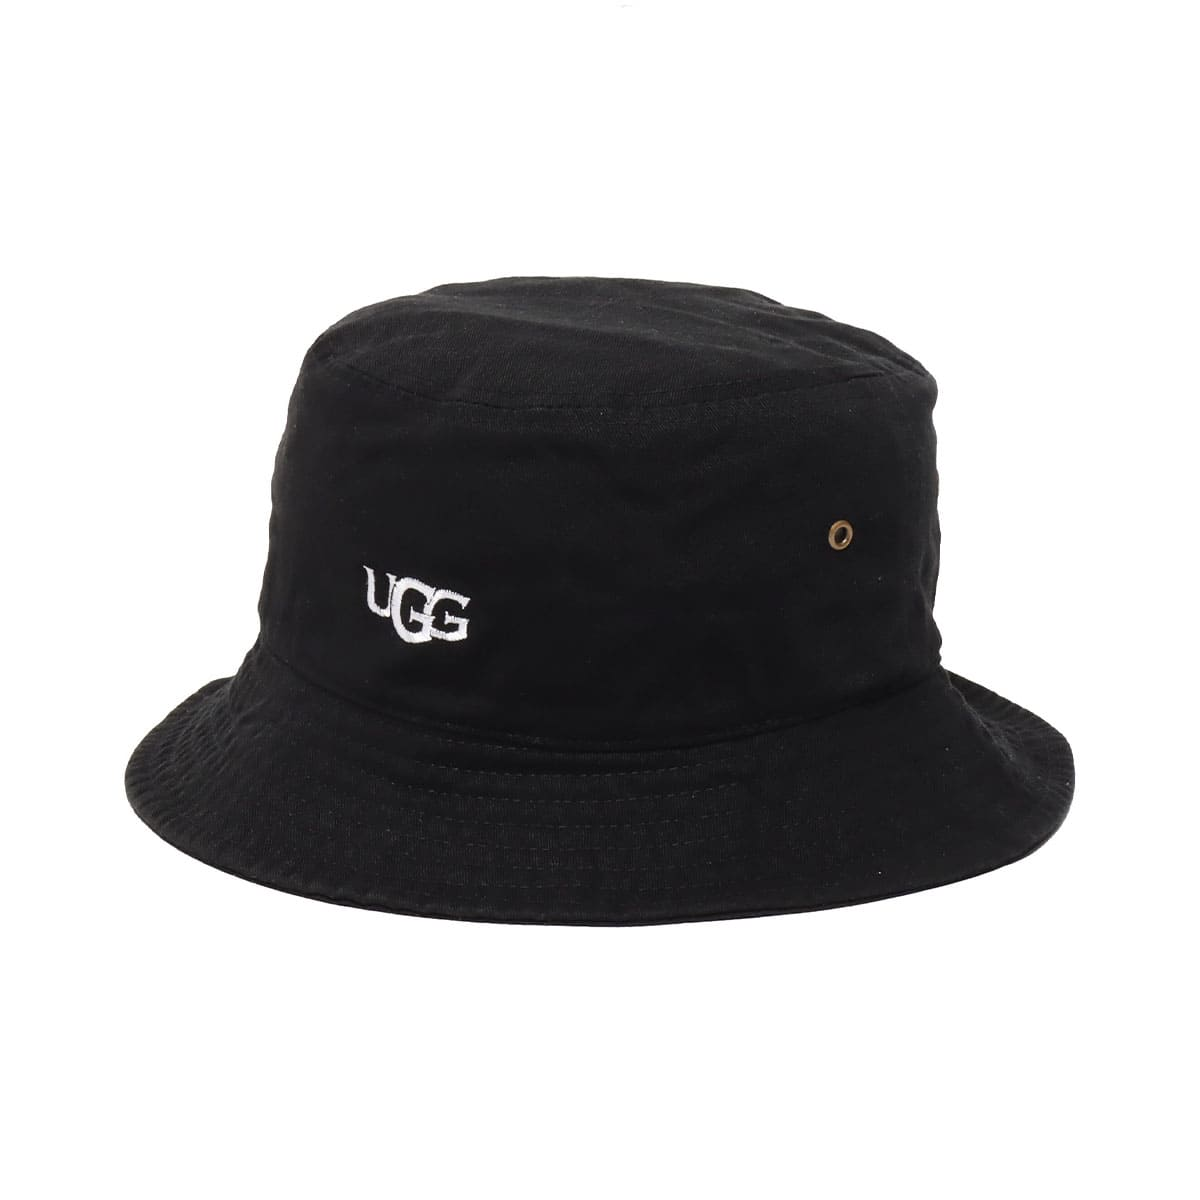 UGG UGG LOGO BUCKET HAT BLACK 20SS-I_photo_large